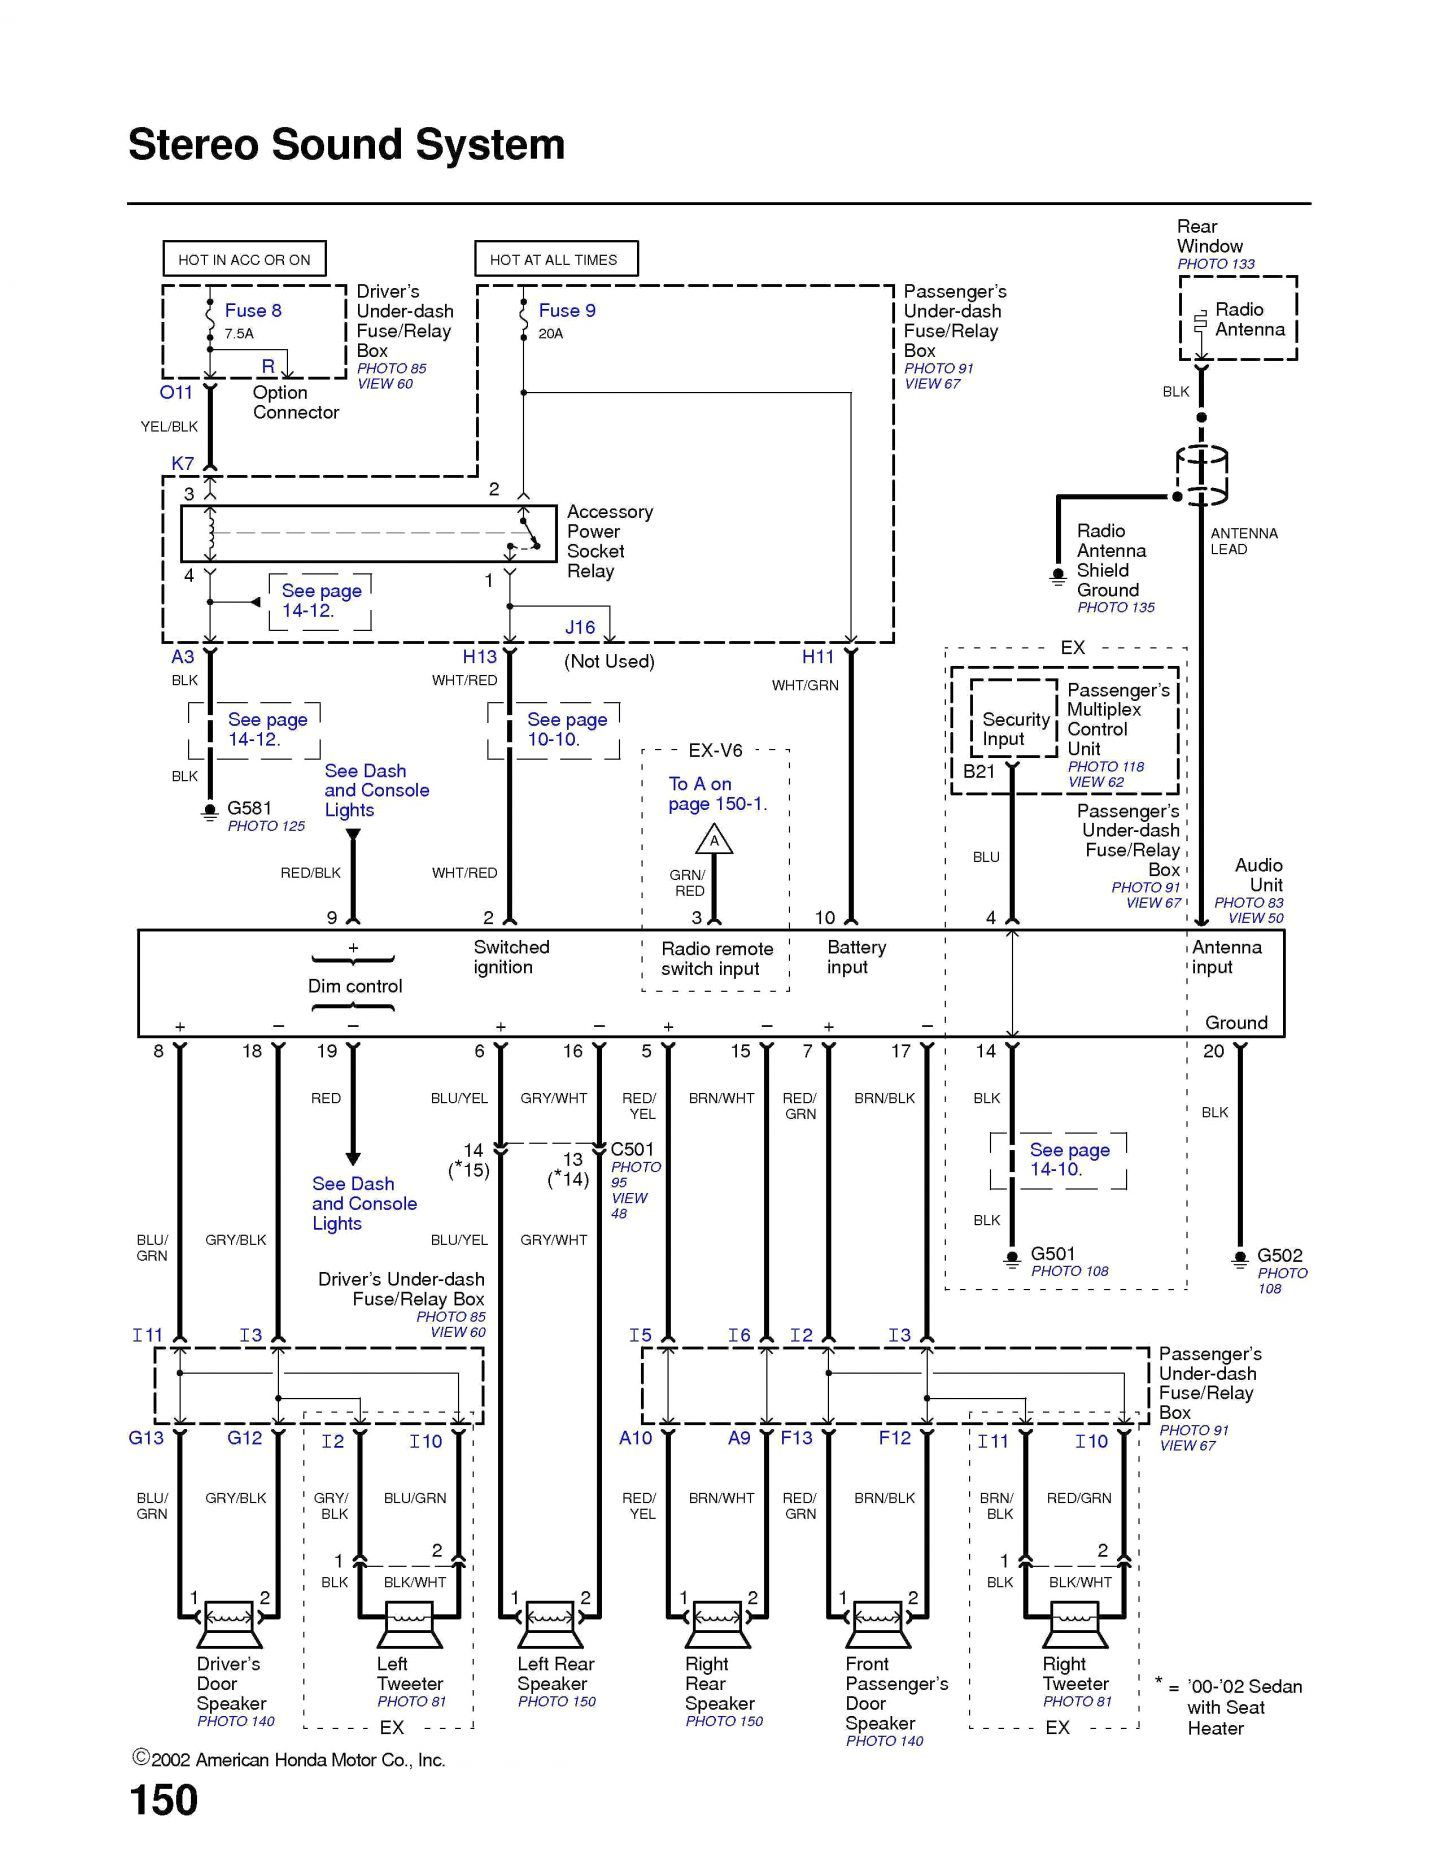 1998 Honda Accord Wiring Diagram - volovets.info | Diagram ...